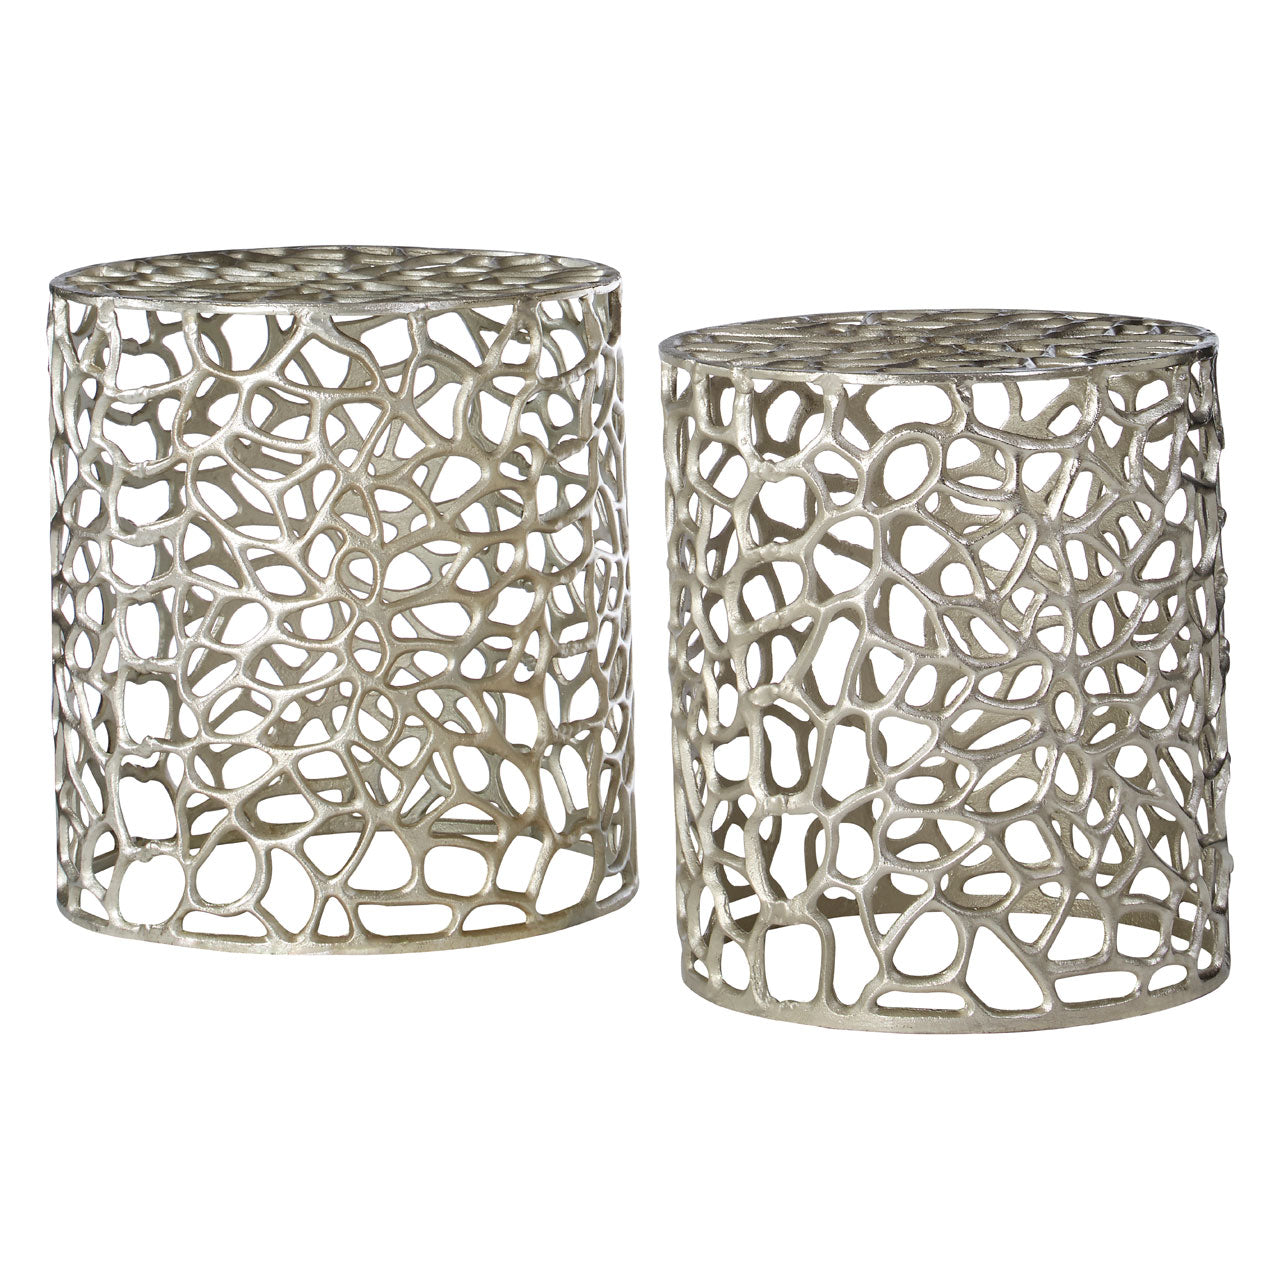 Templar Set Of 2 Stools in Silver